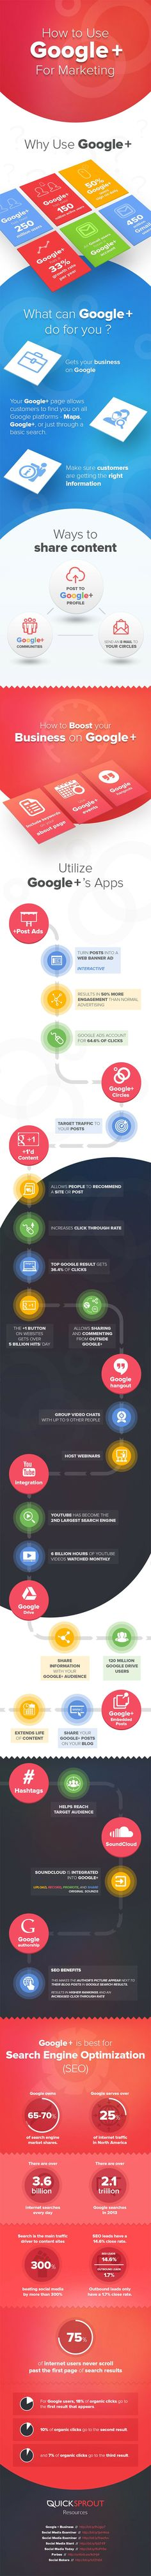 10 Ways to Market Your Business Using Google Plus